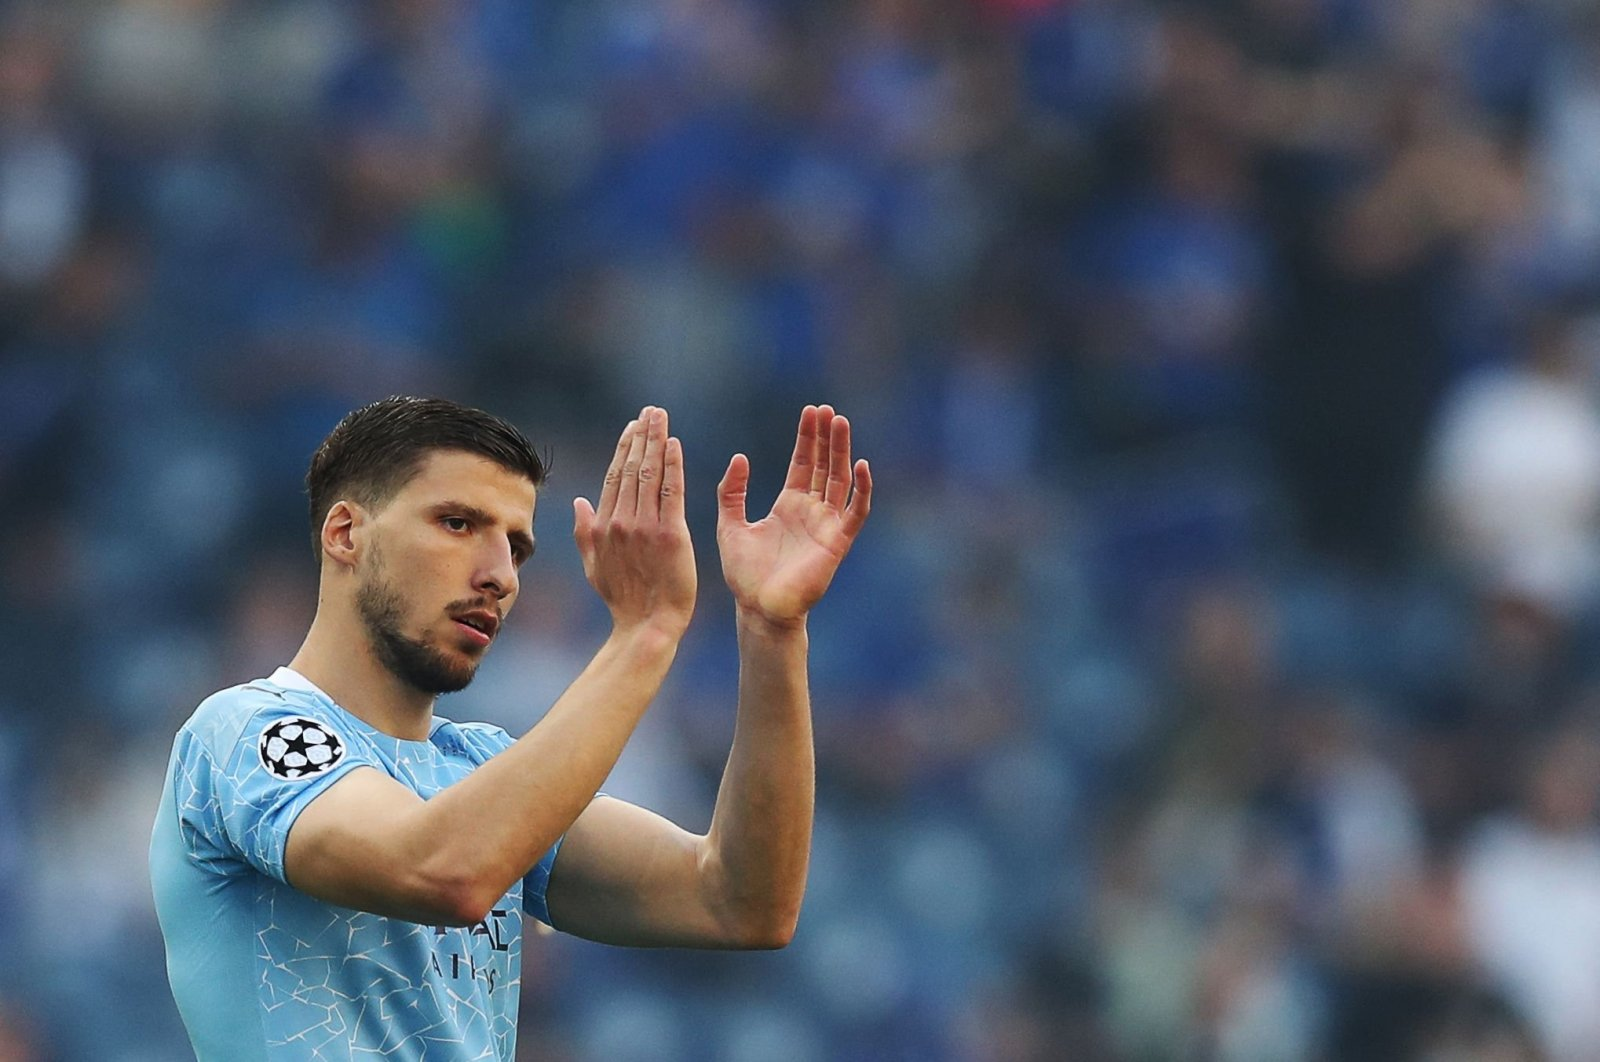 Manchester City's Portuguese defender Ruben Dias gestures before the start of the UEFA Champions League final football match between Manchester City and Chelsea FC at the Dragao stadium in Porto, Portugal, May 29, 2021. (AFP Photo)